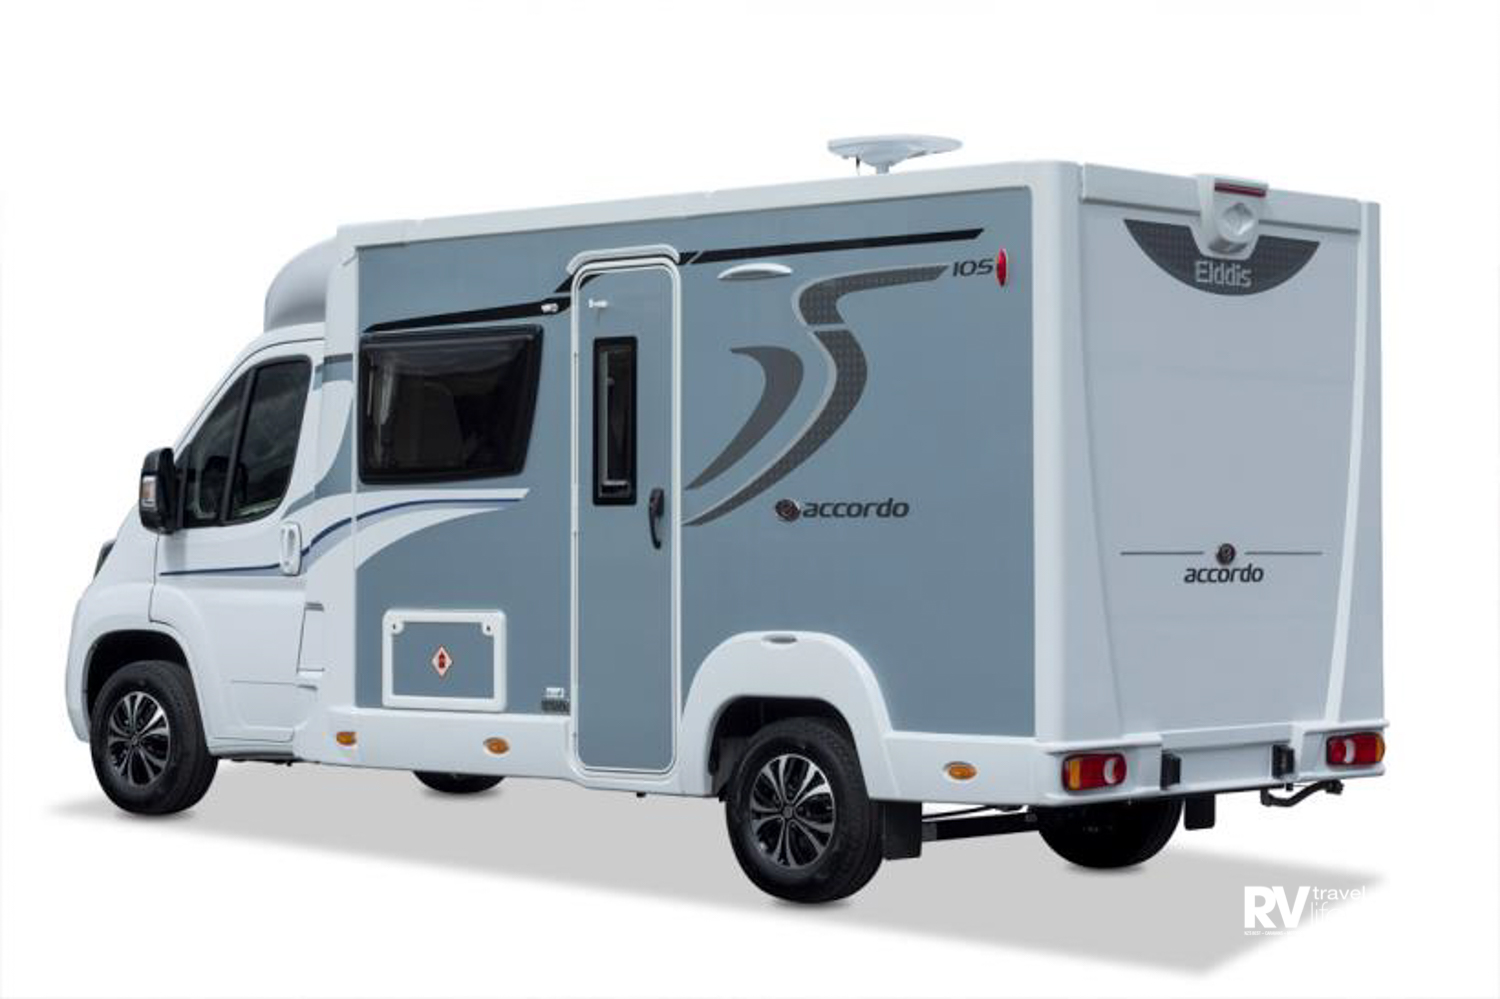 The Elddis Accordo offers compact motorhome buyers the welcome option of a Peugeot base vehicle